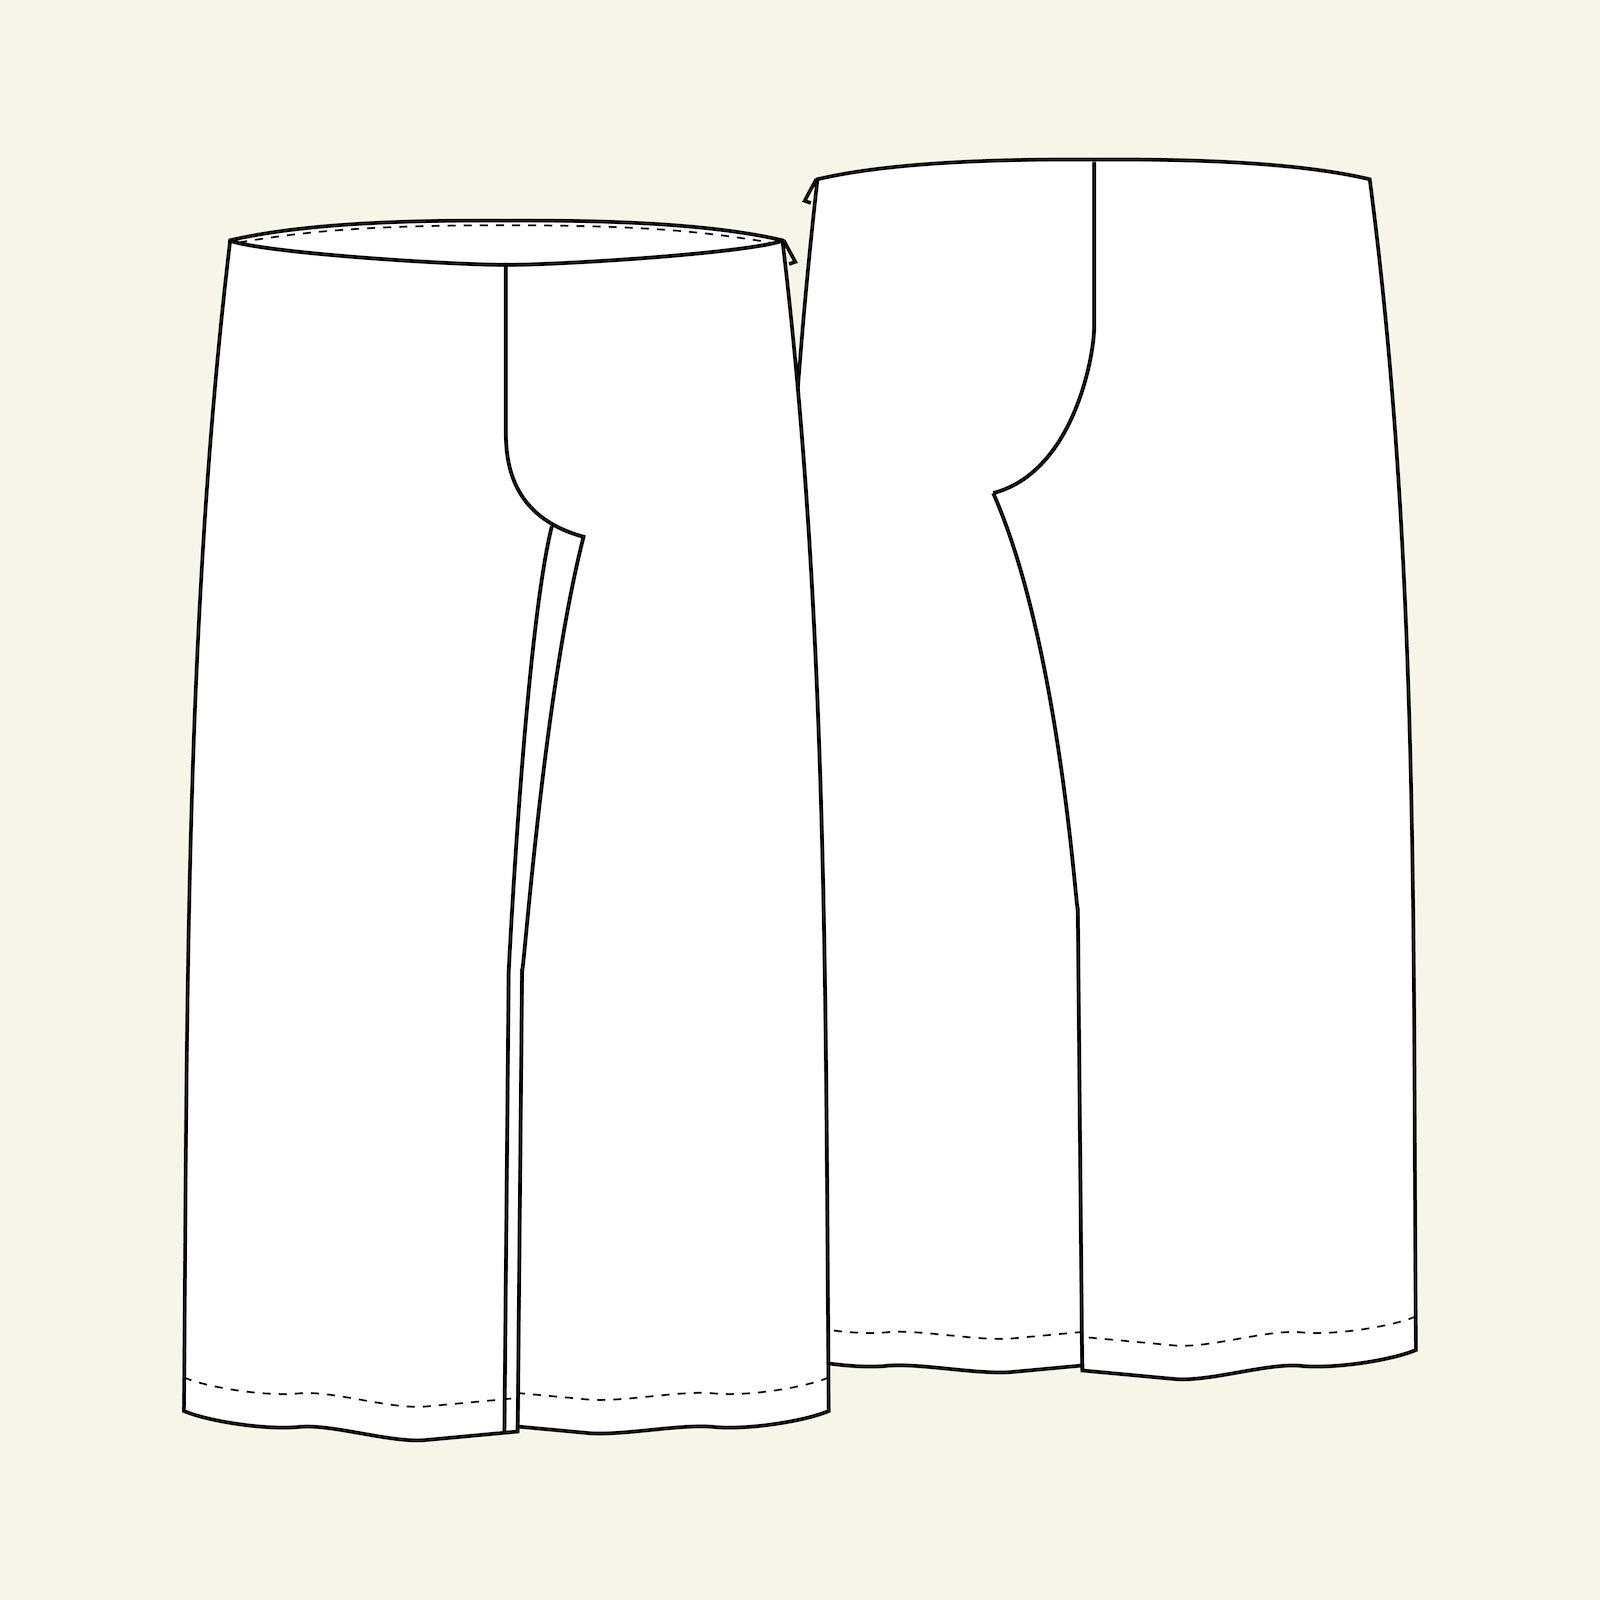 Boot cut trousers, 50/22 p70005_pack